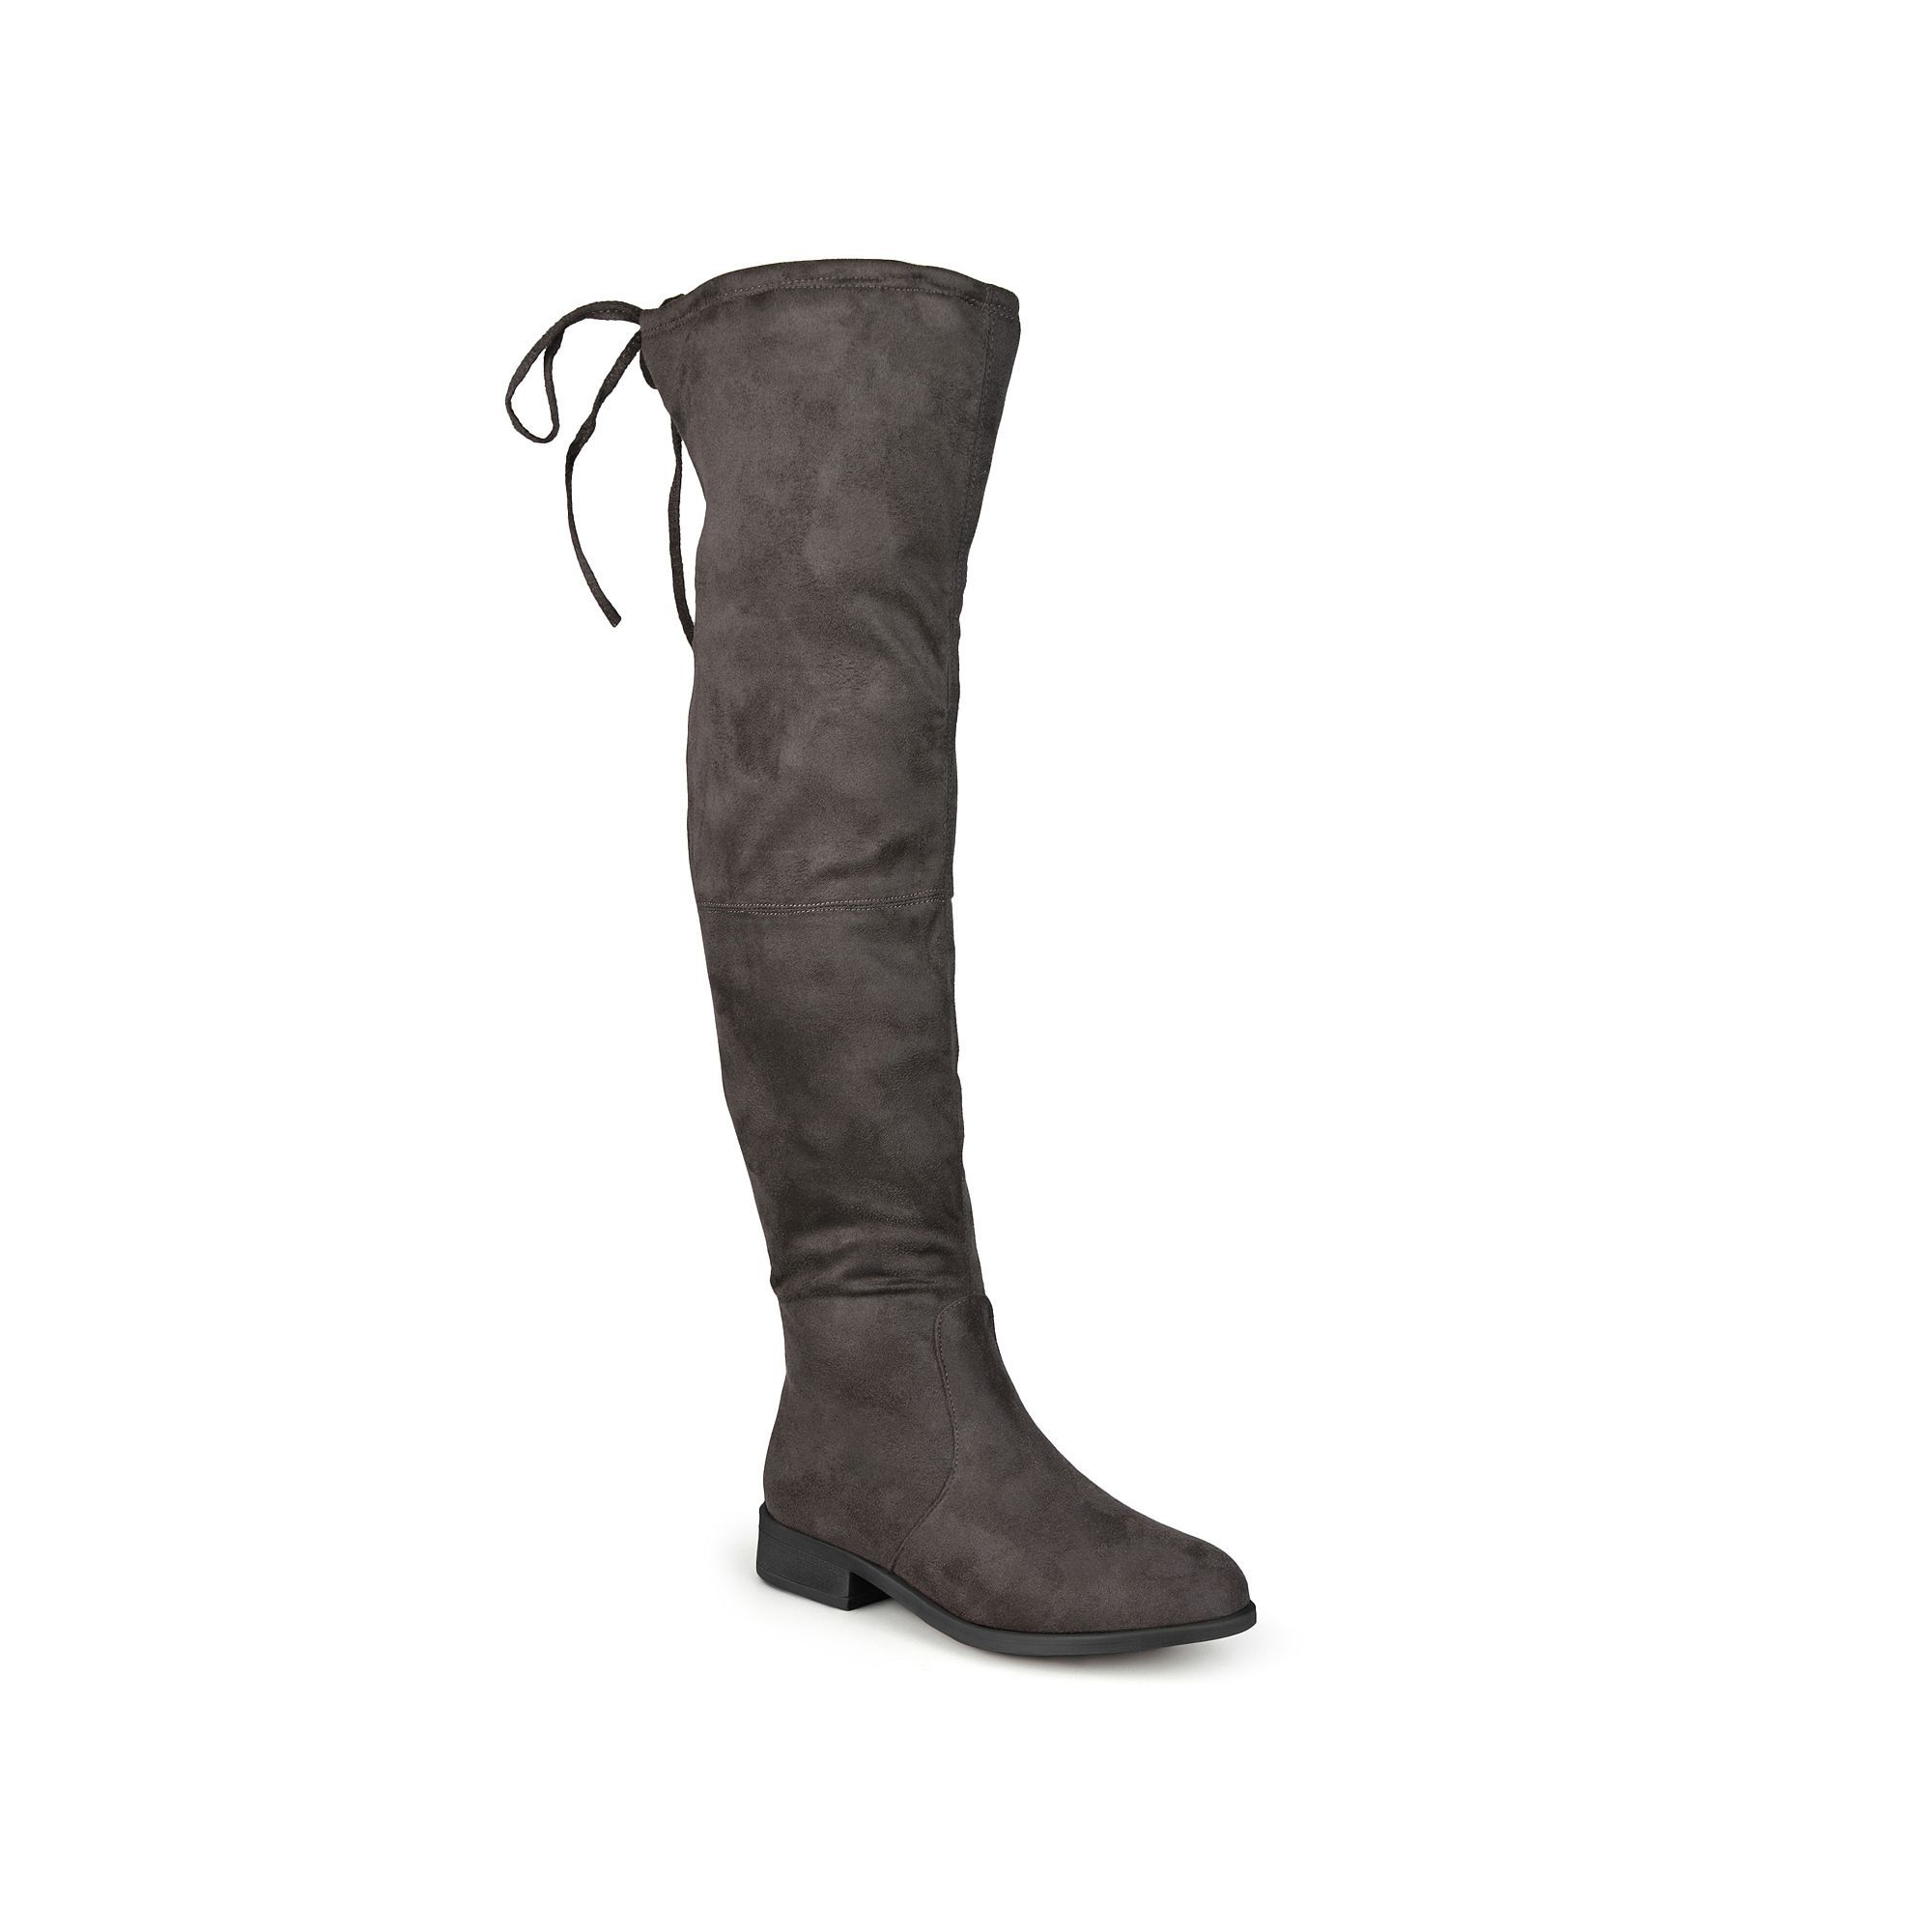 f86d5eb44e20 Journee Collection Mount Women s Over-the-Knee Boots in 2019 ...